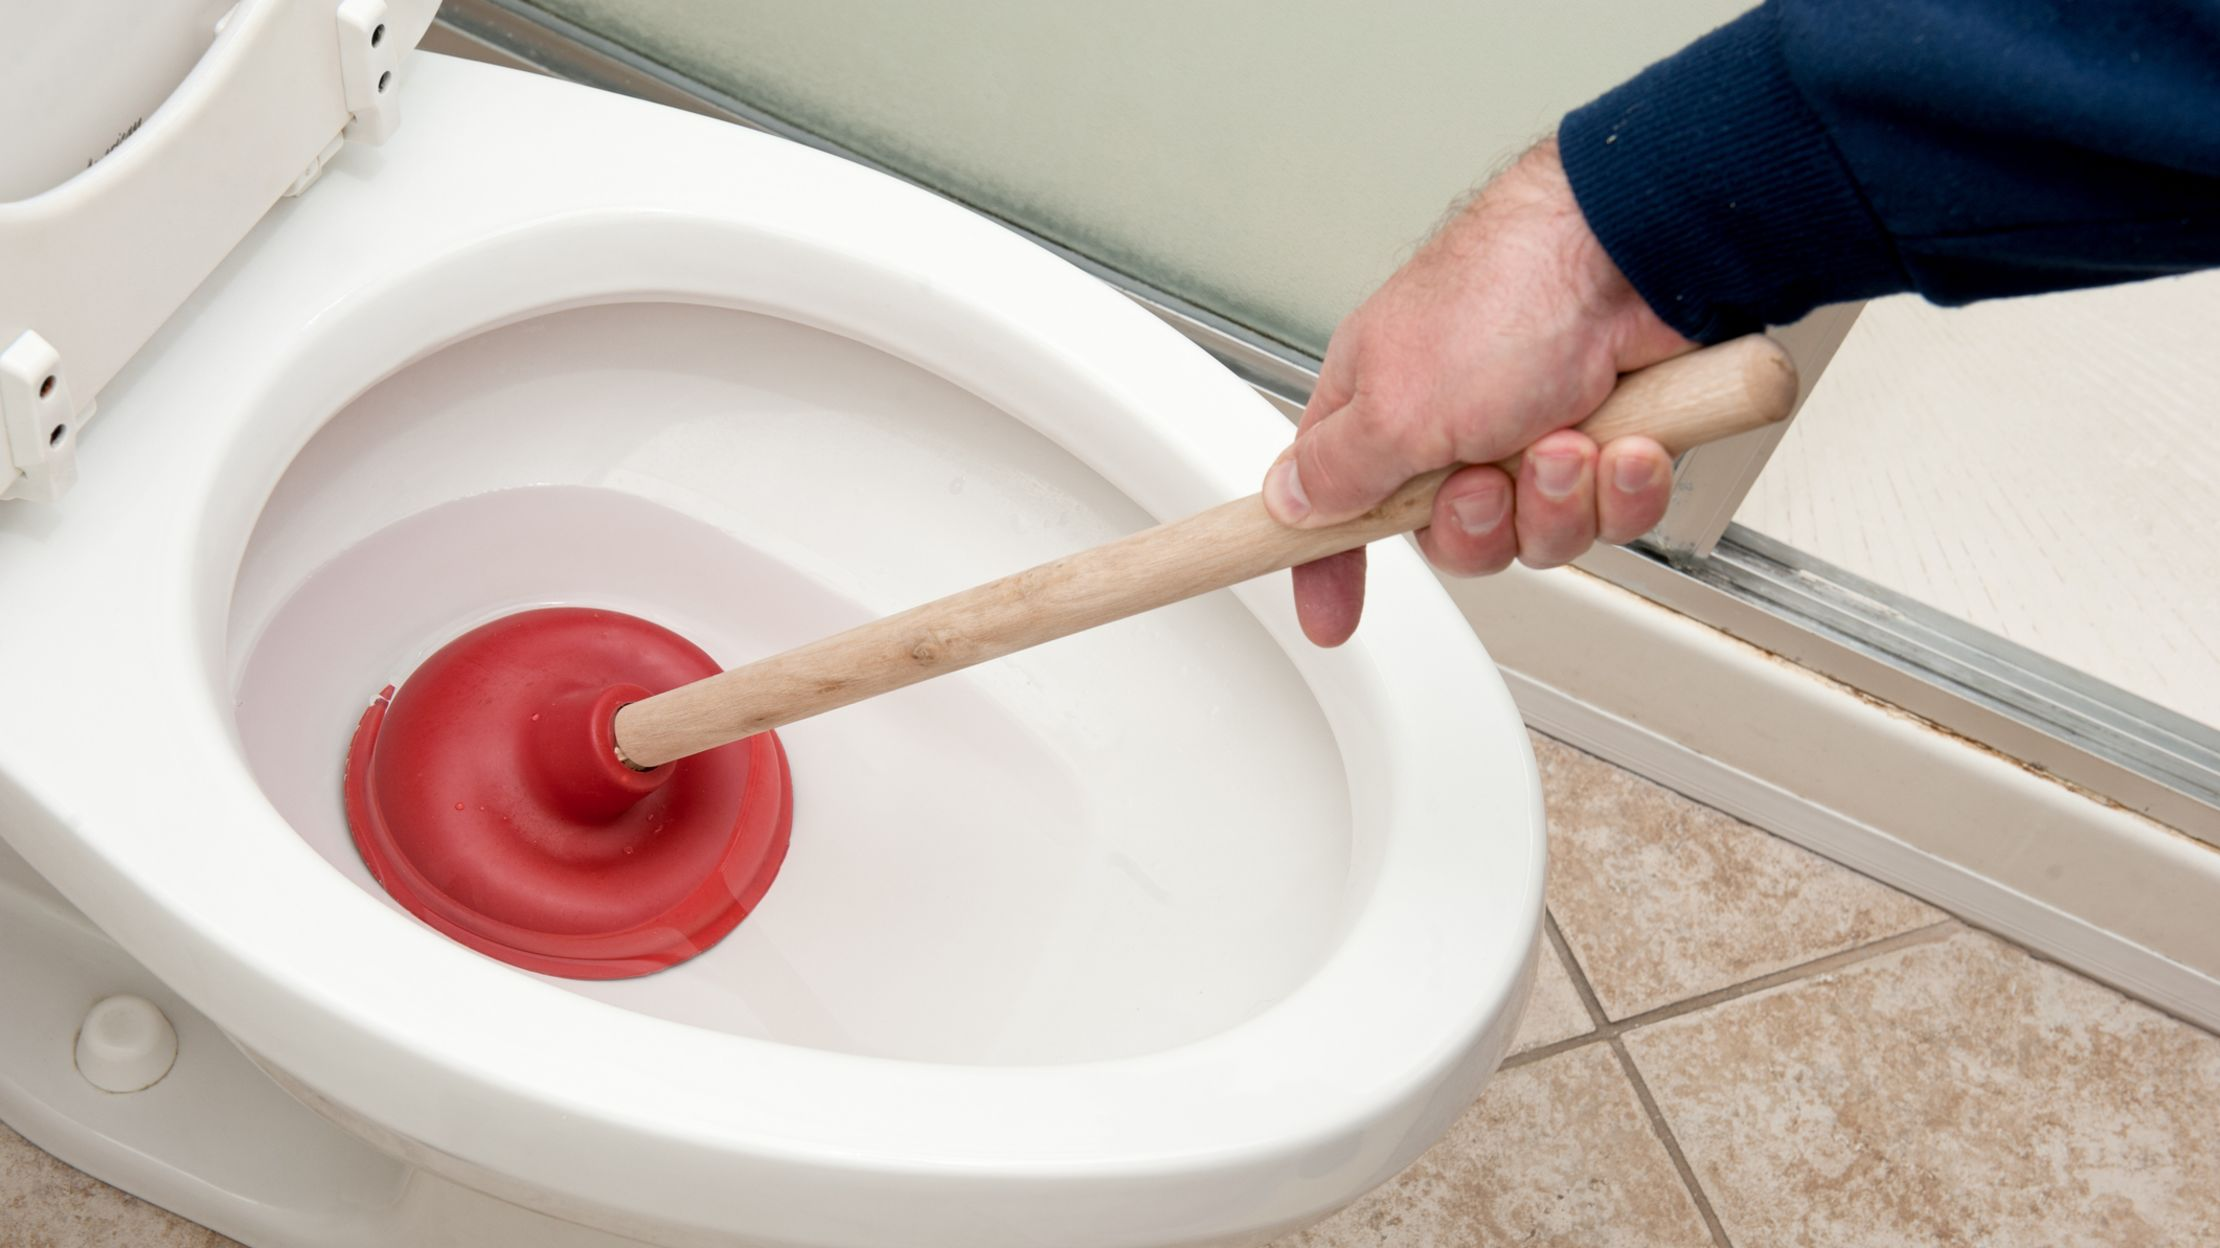 UNCLOG A CLOGGED TOILET WITH POOP